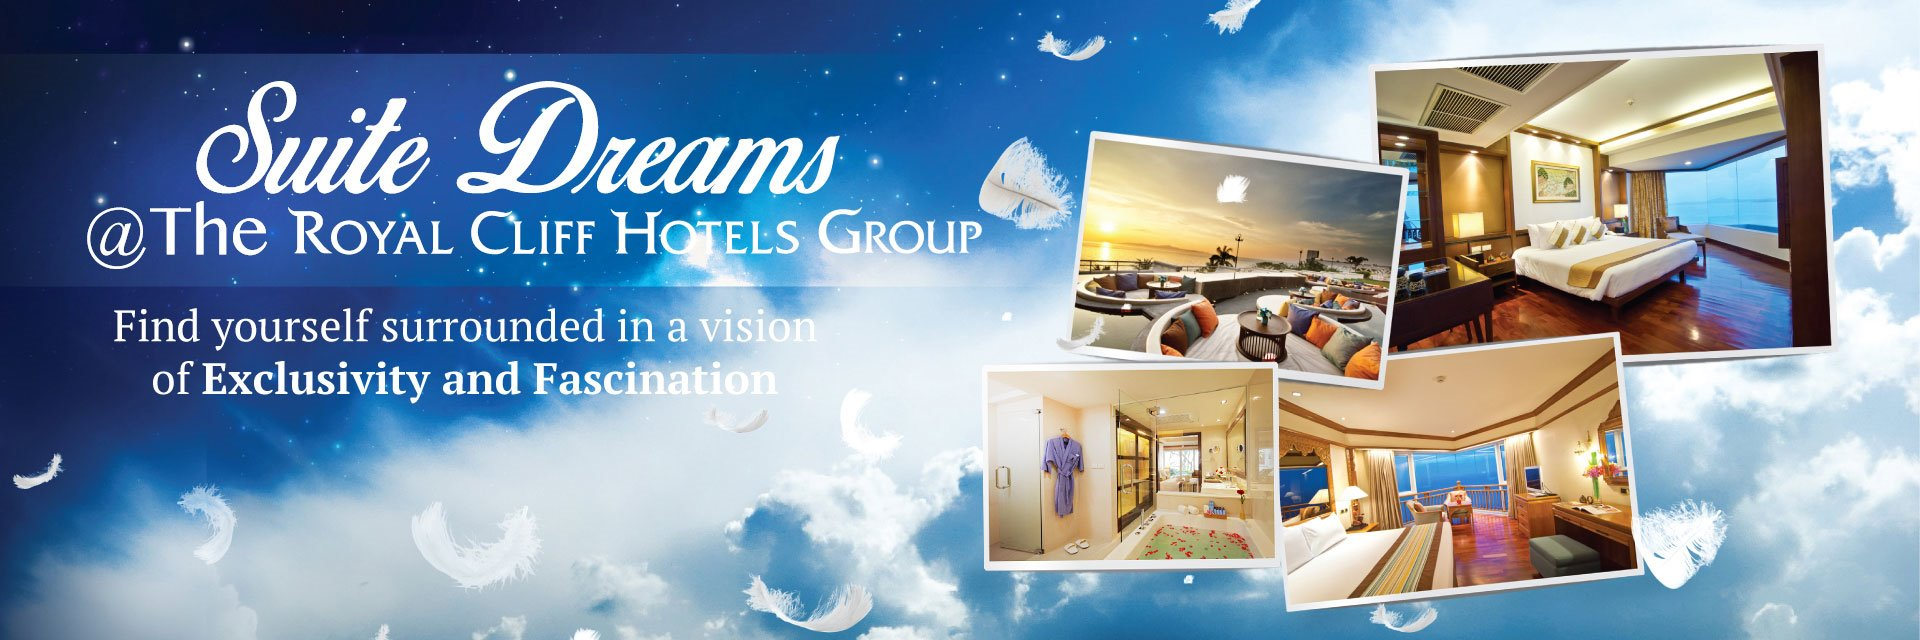 Suite Dreams @ The Royal Cliff Hotels Group